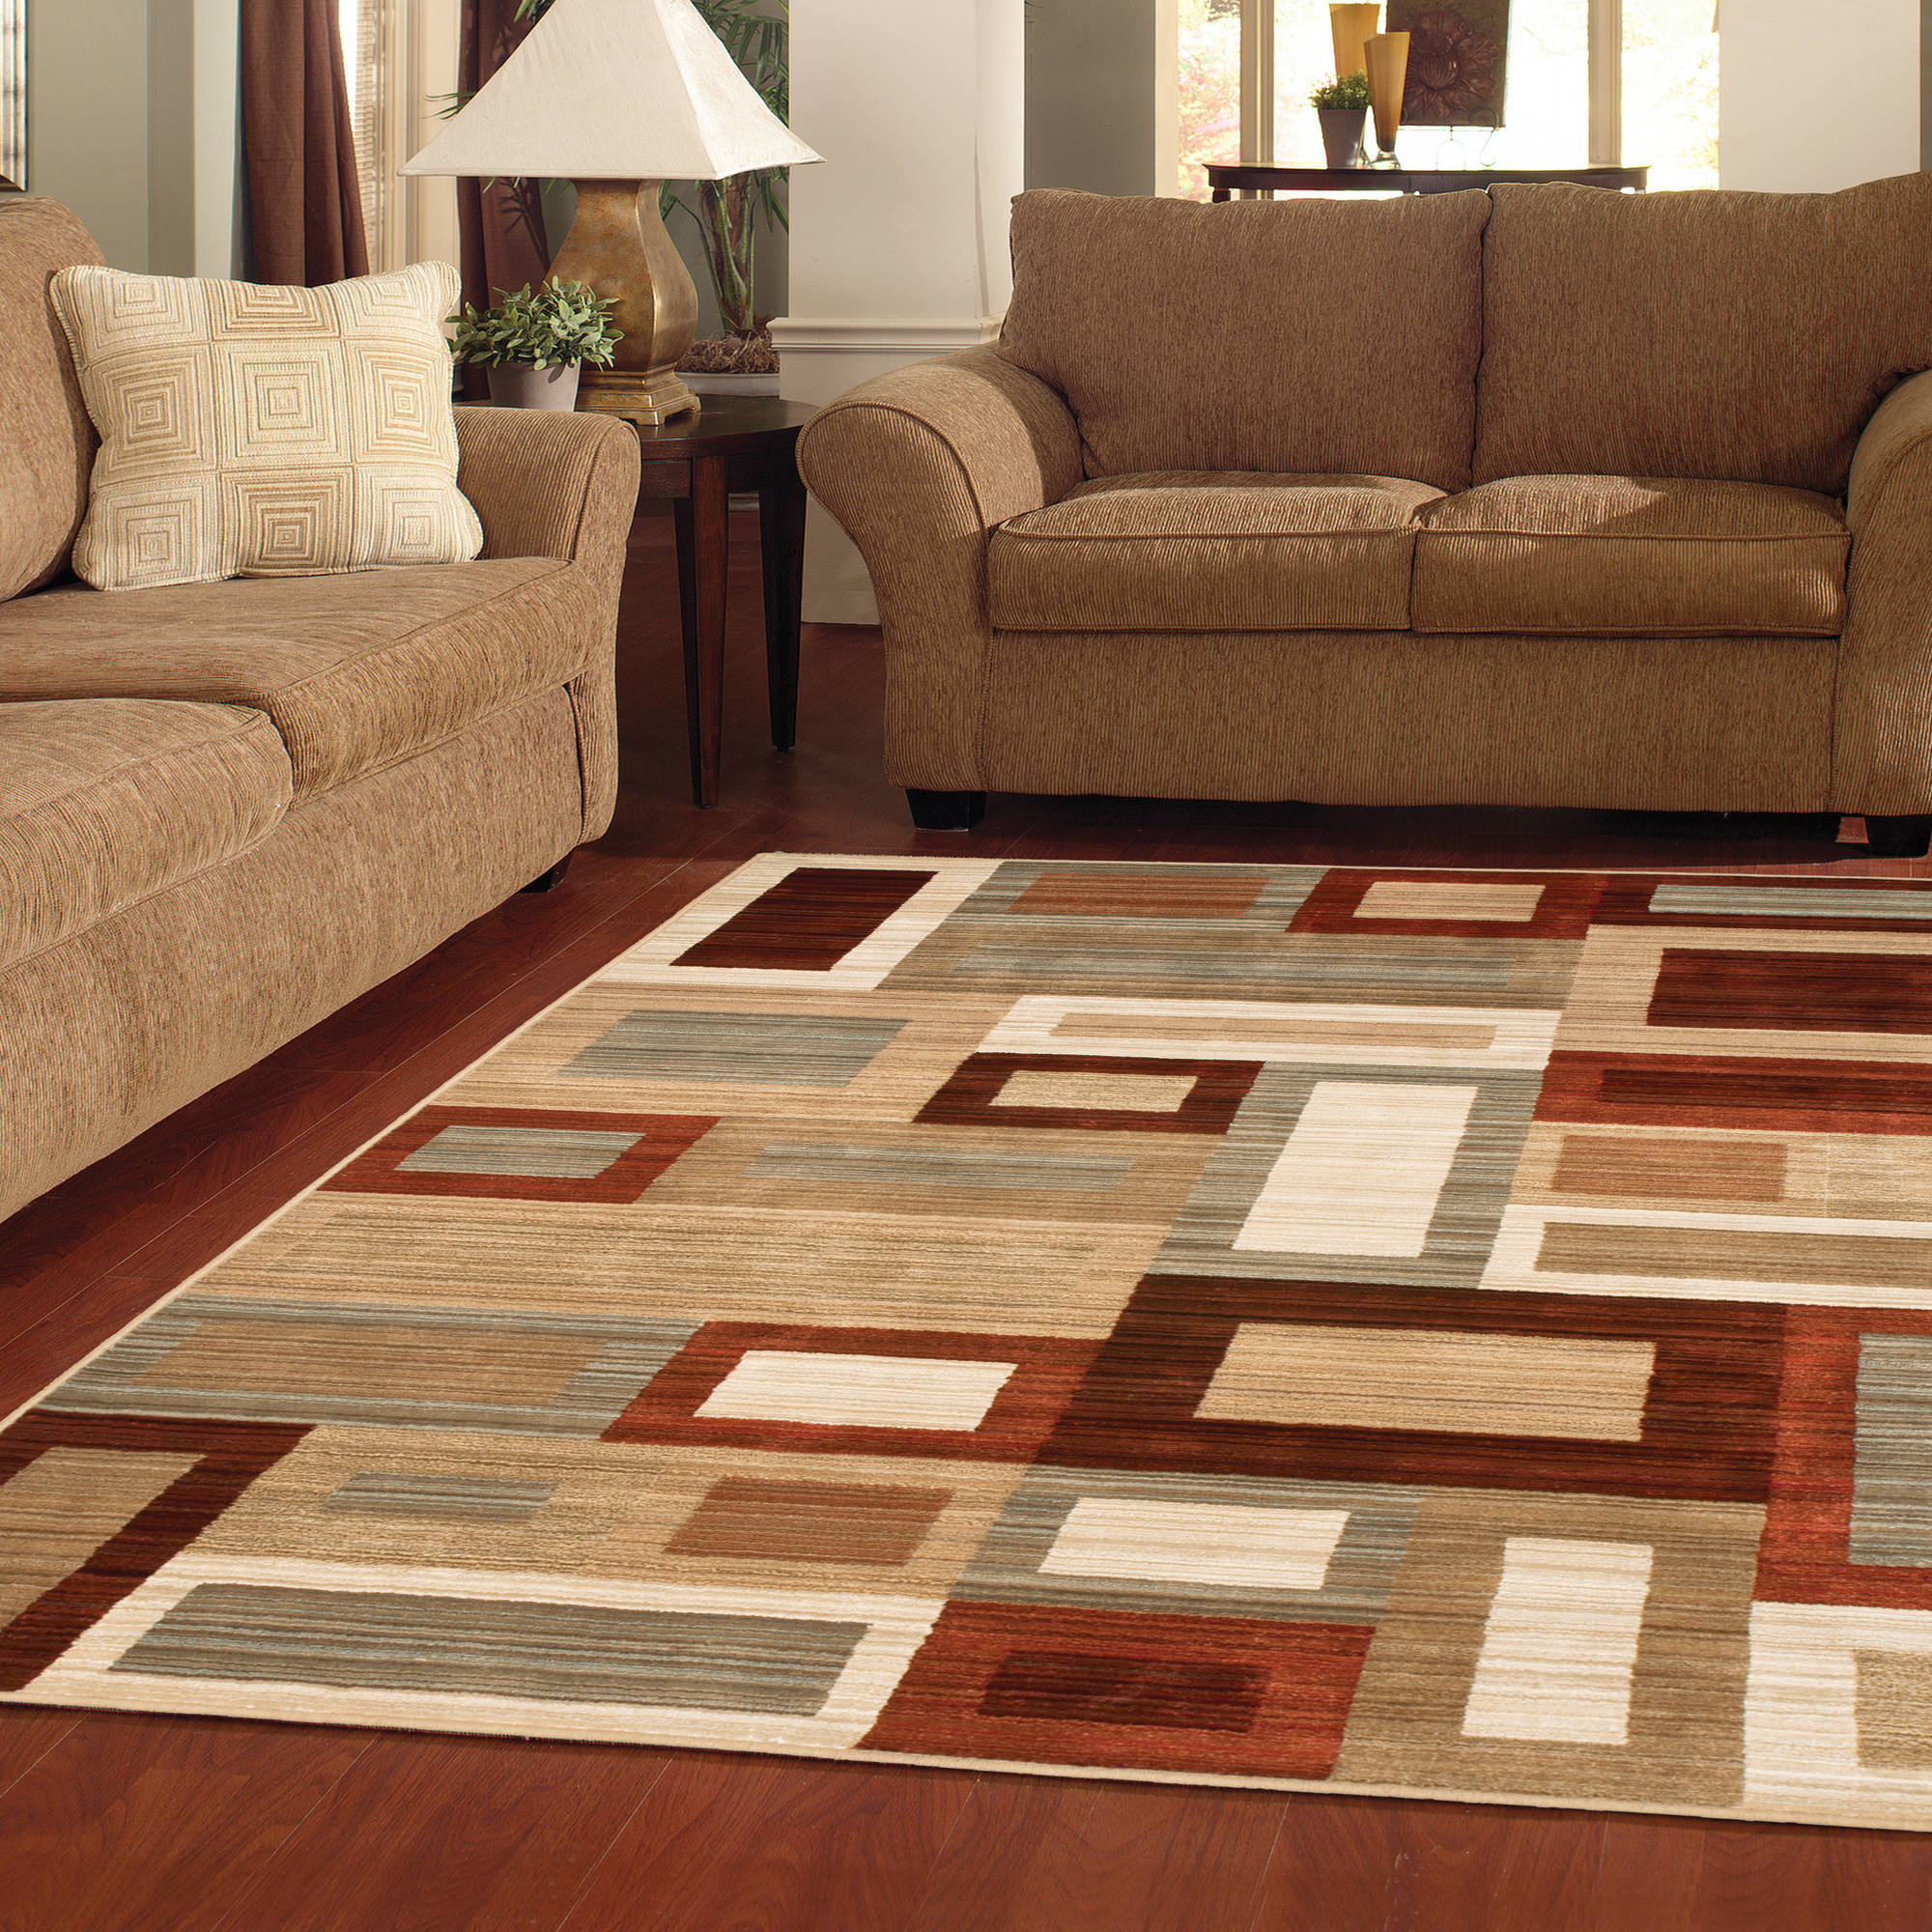 Better Homes and Gardens Area Rugs Walmartcom